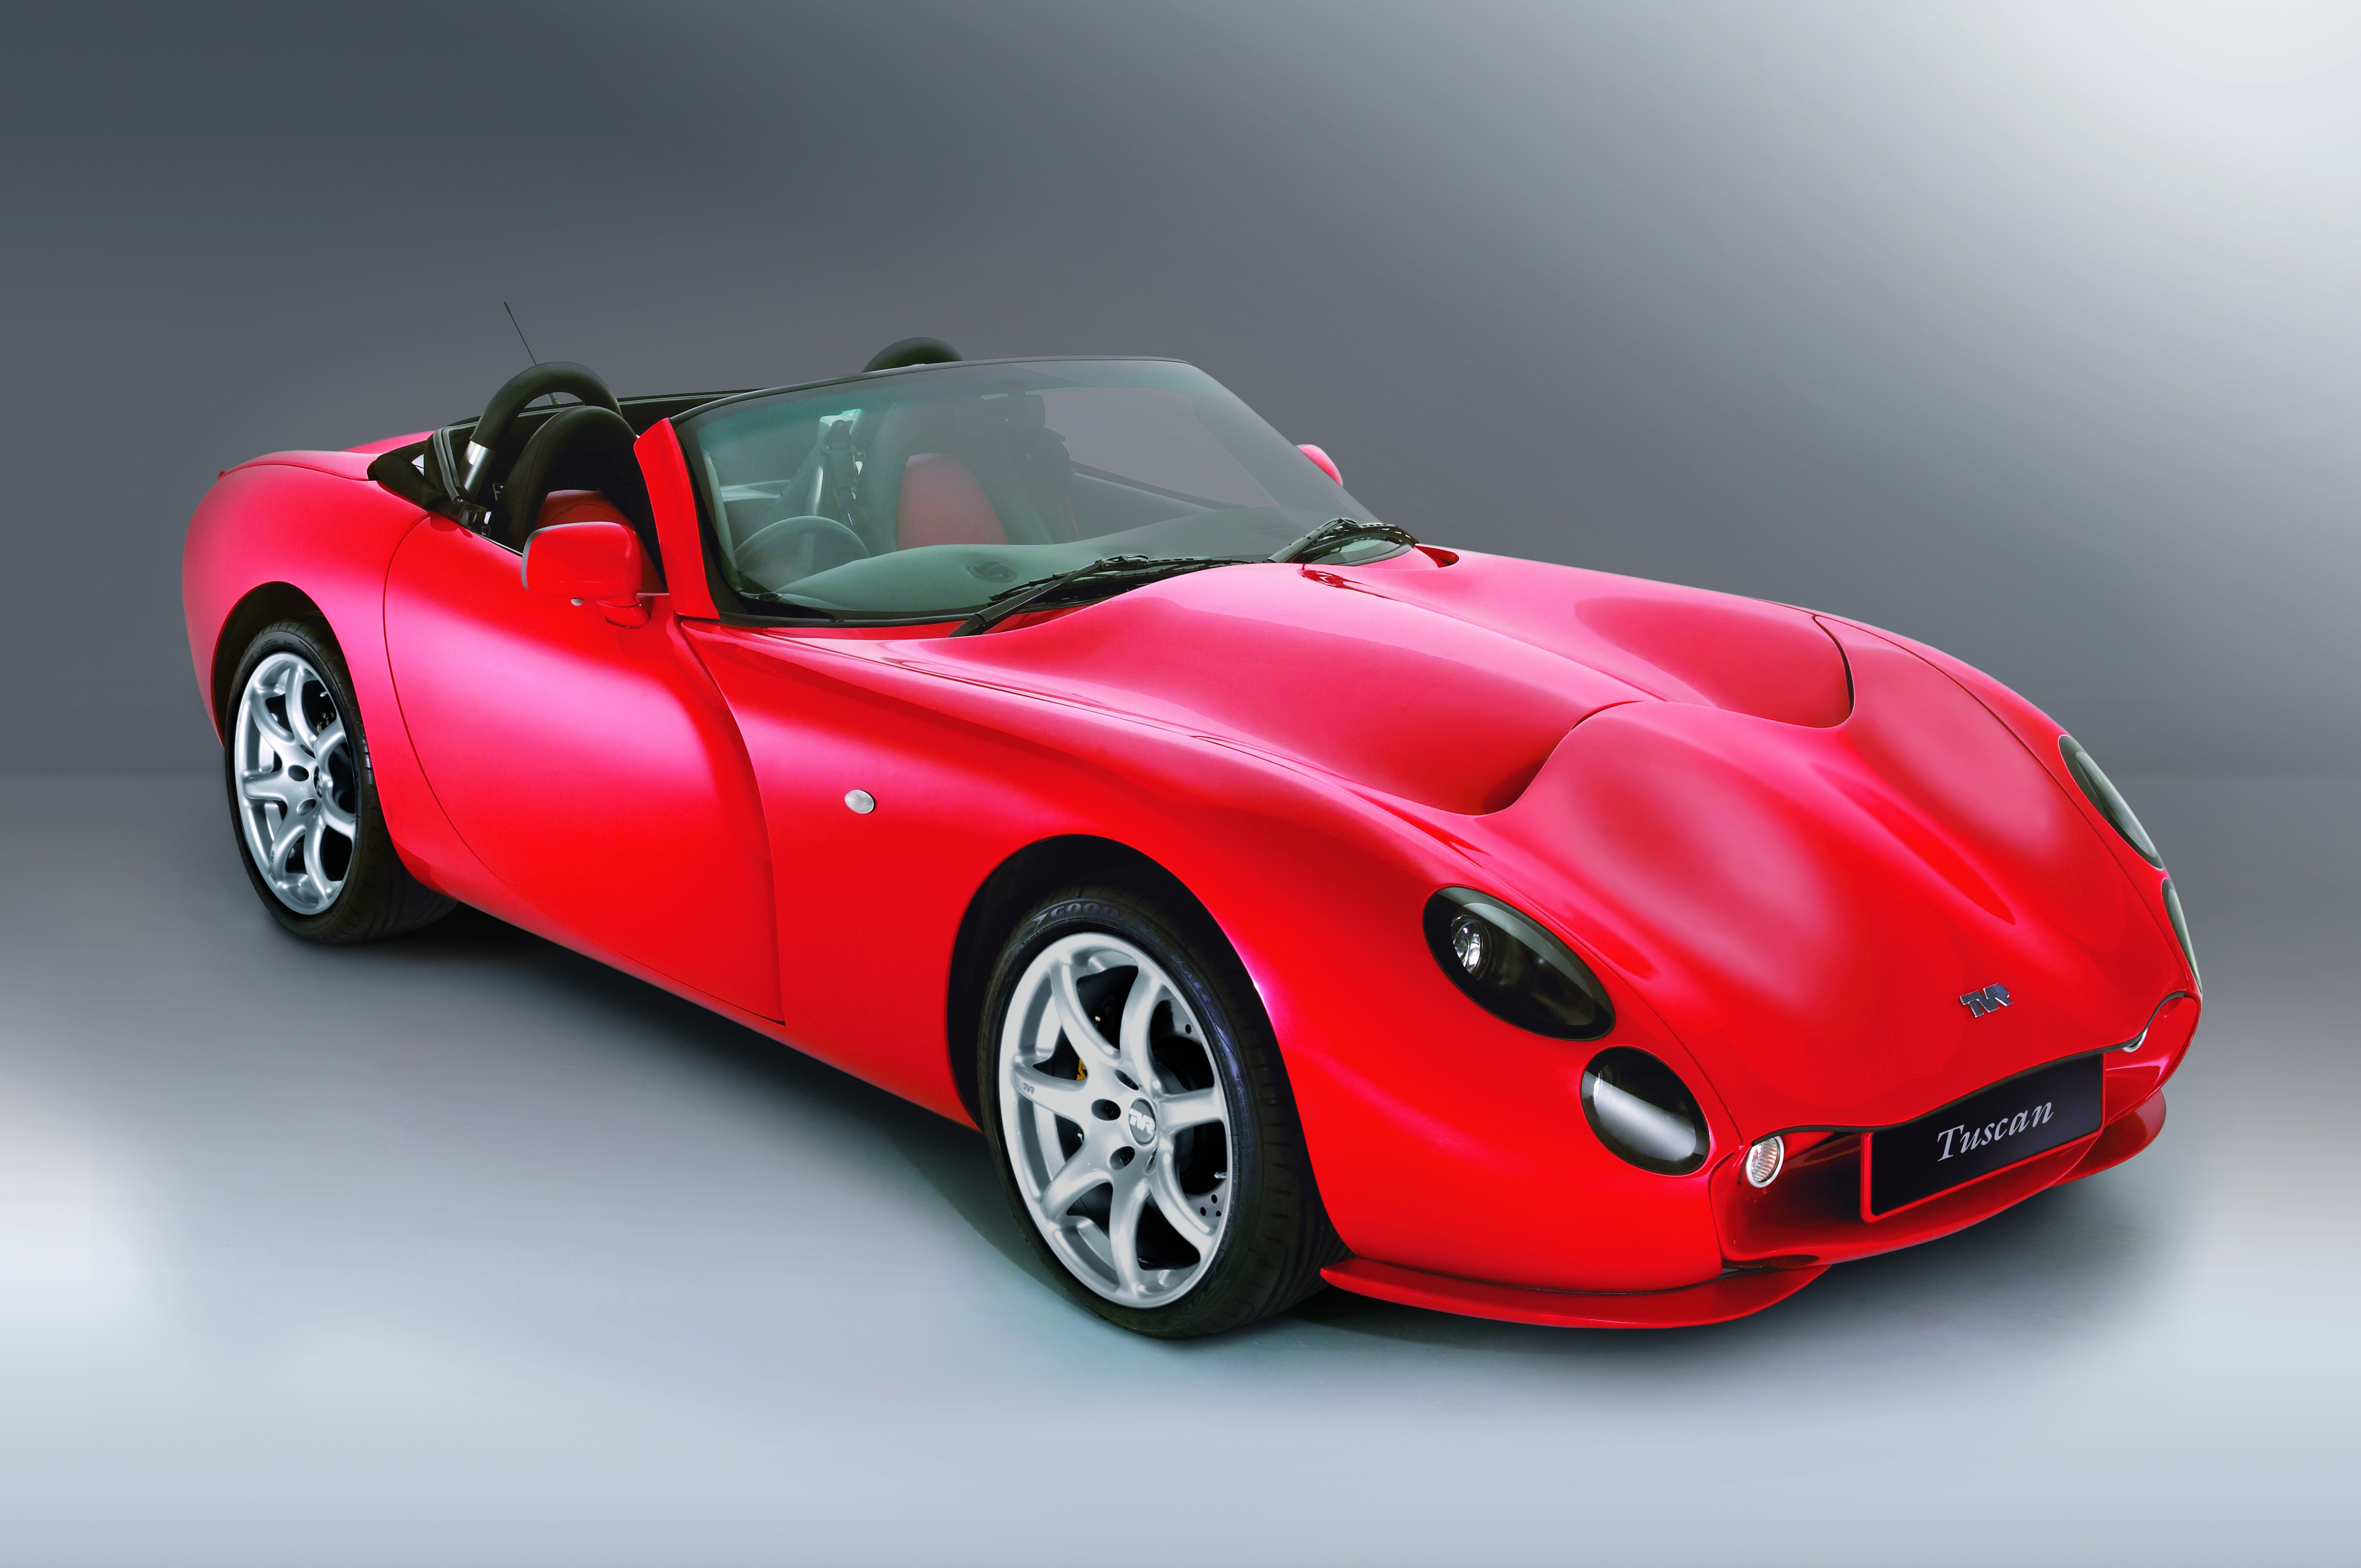 Tvr tuscan photo - 4